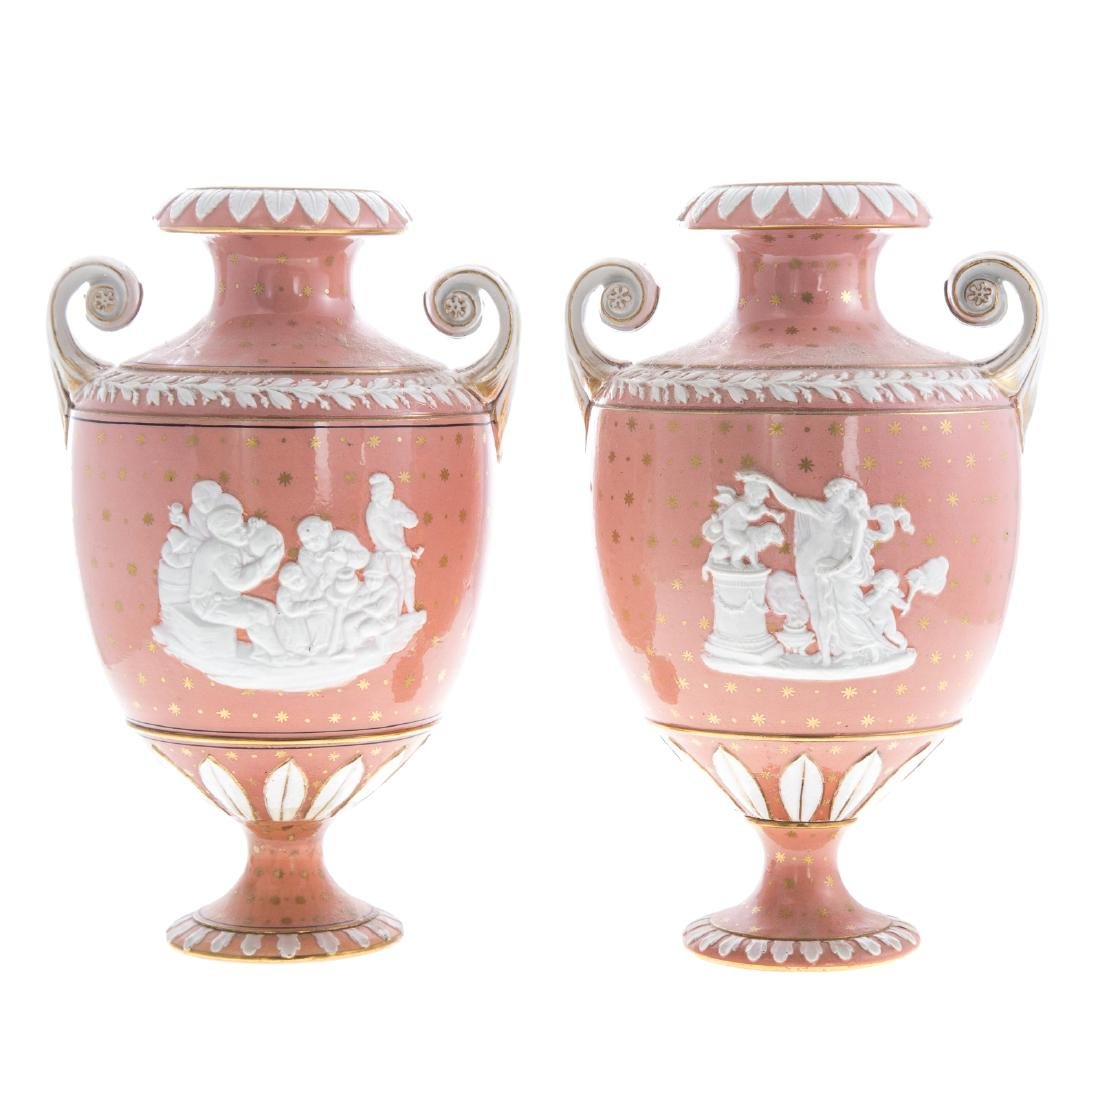 Pair Wedgwood glazed jasperware urns